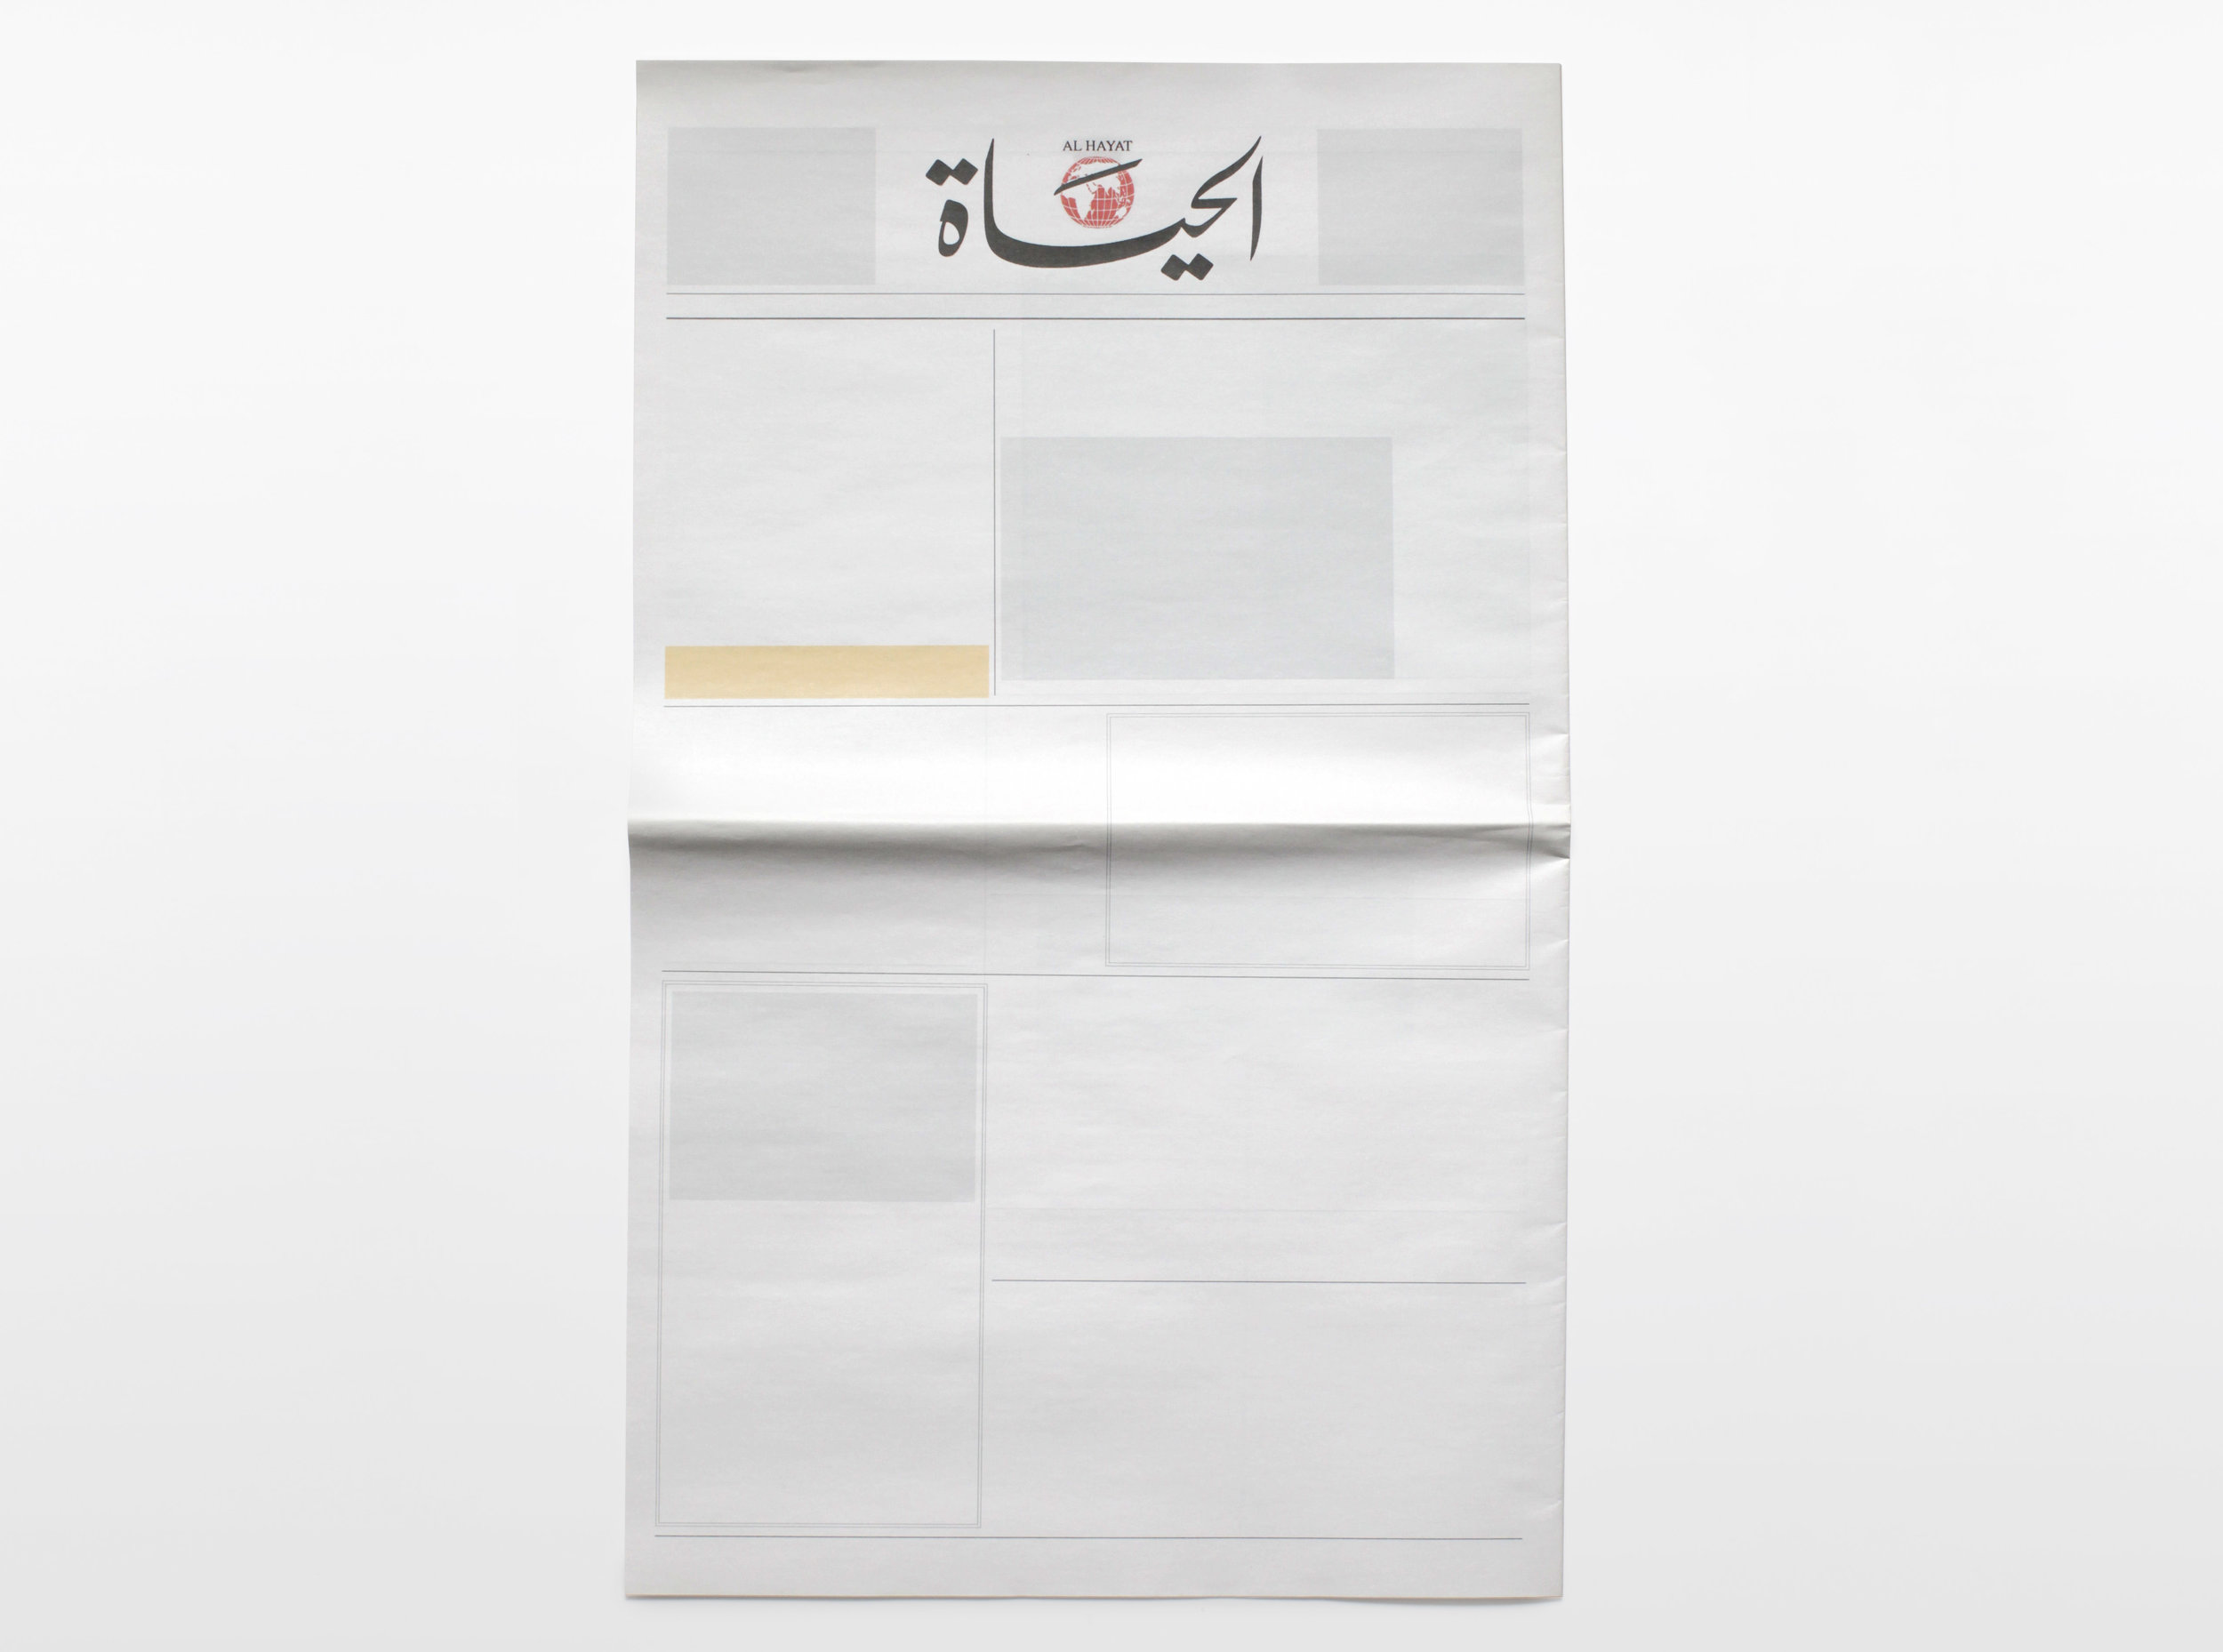 NOTHING IN AL HAYAT:  Newspapers from around the world with nothing in them.